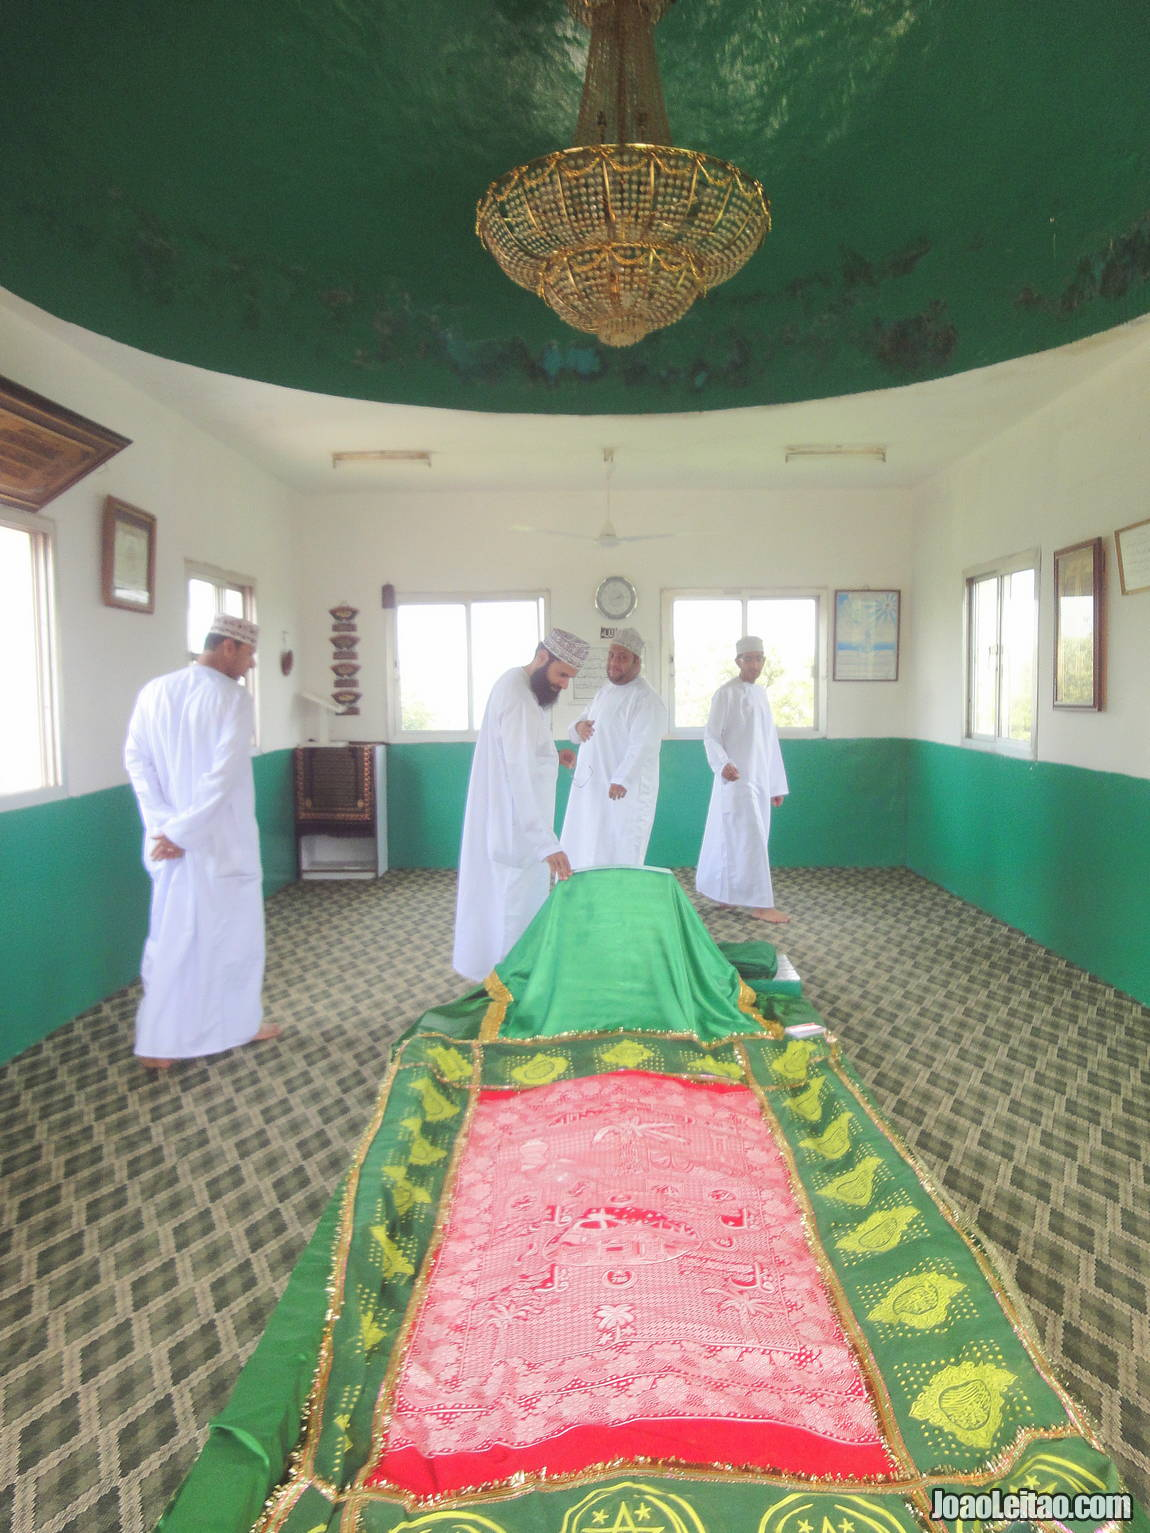 Visit the Tomb of Job in Oman